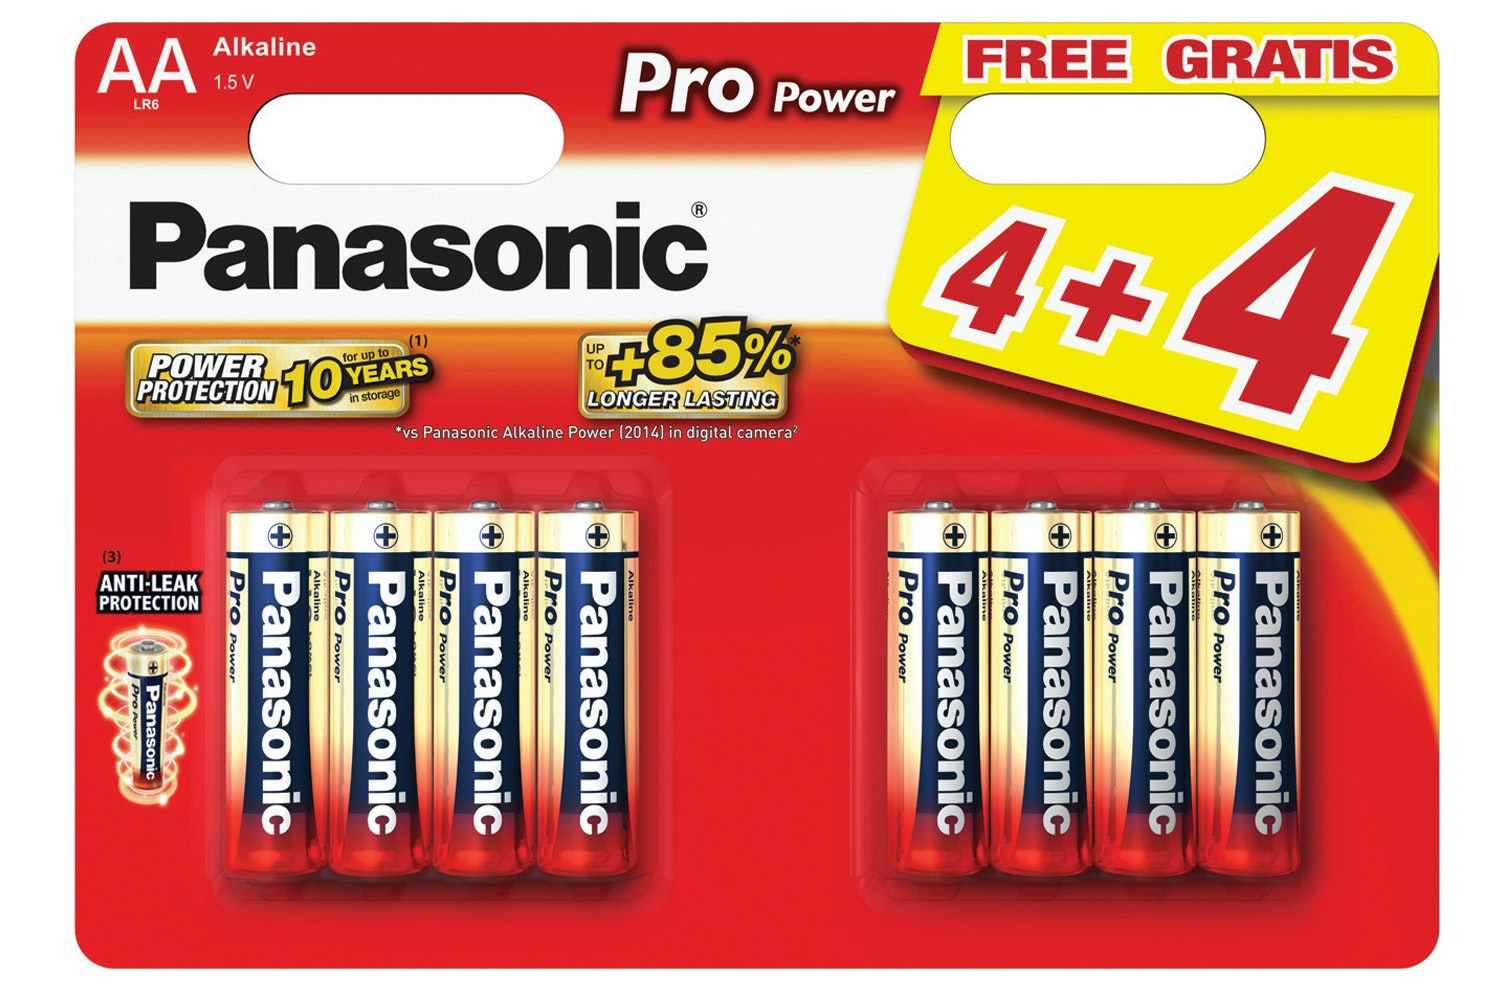 Panasonic PP Gold AA Power Batteries | LR6X/8WB